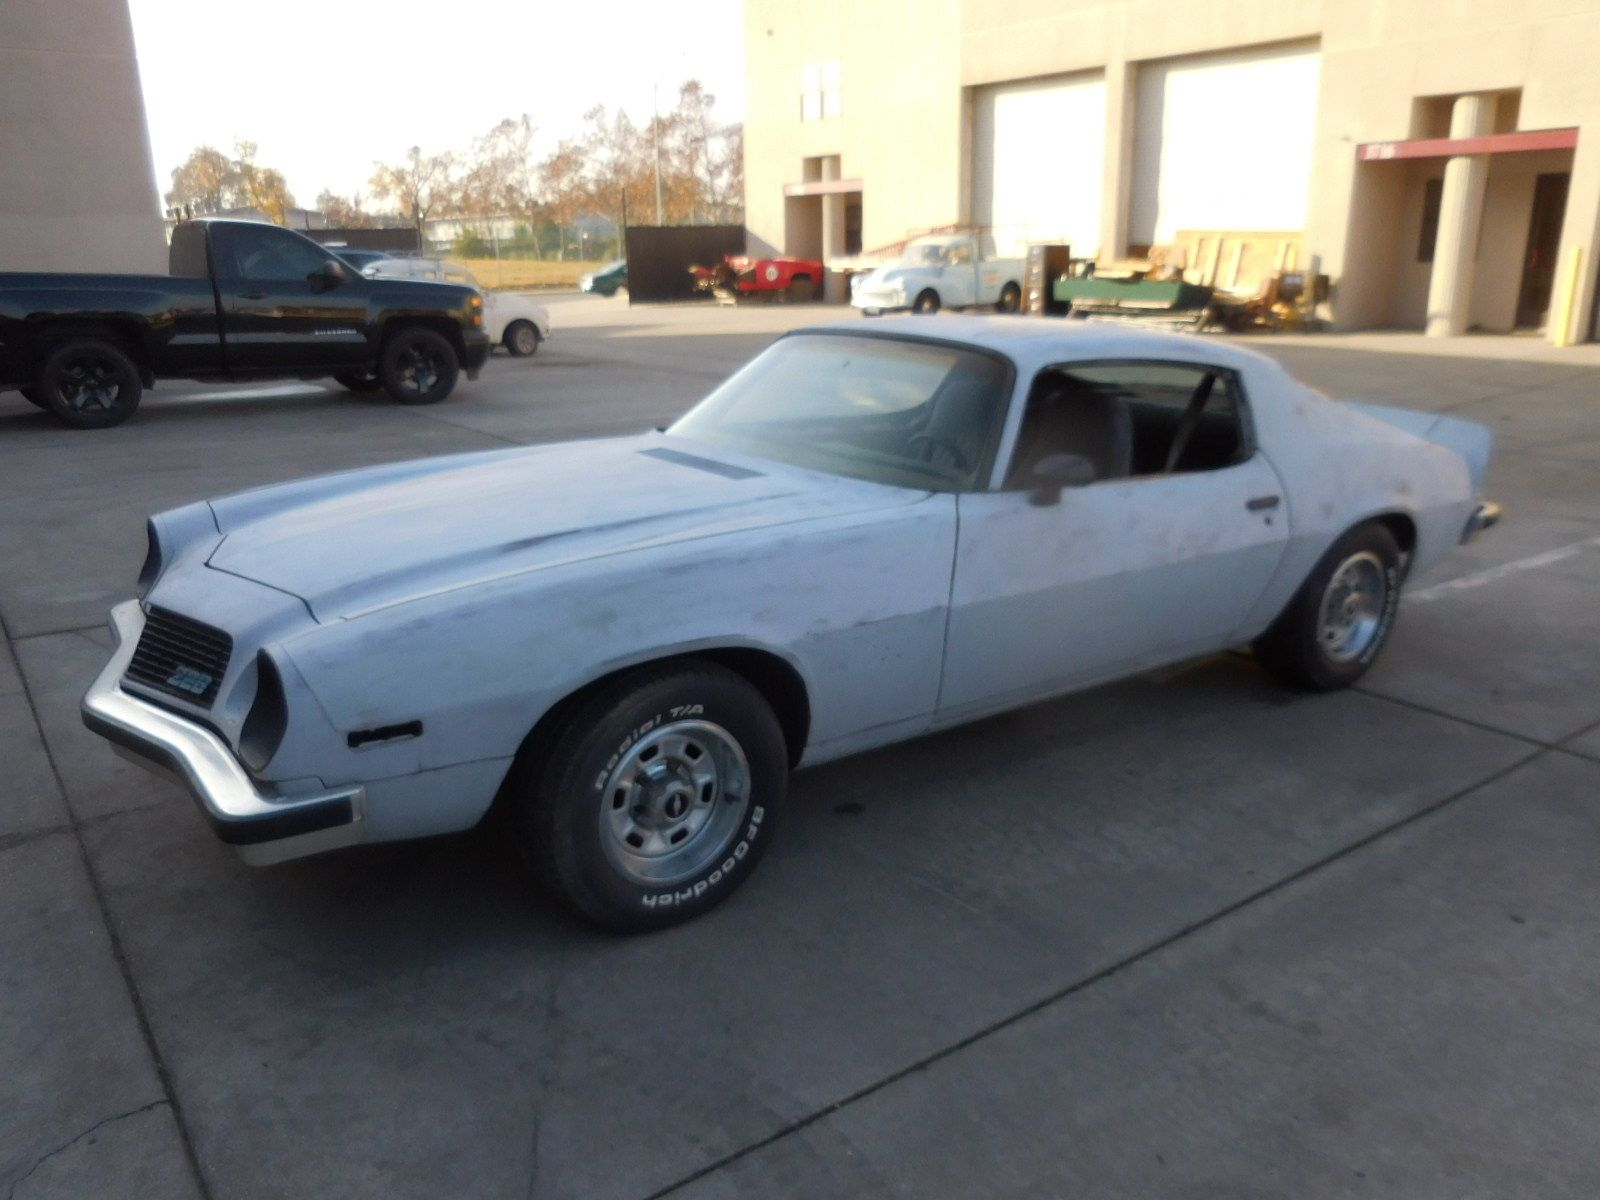 1974 Chevrolet Camaro 400 3 Speed Manual Transmission Picked Up